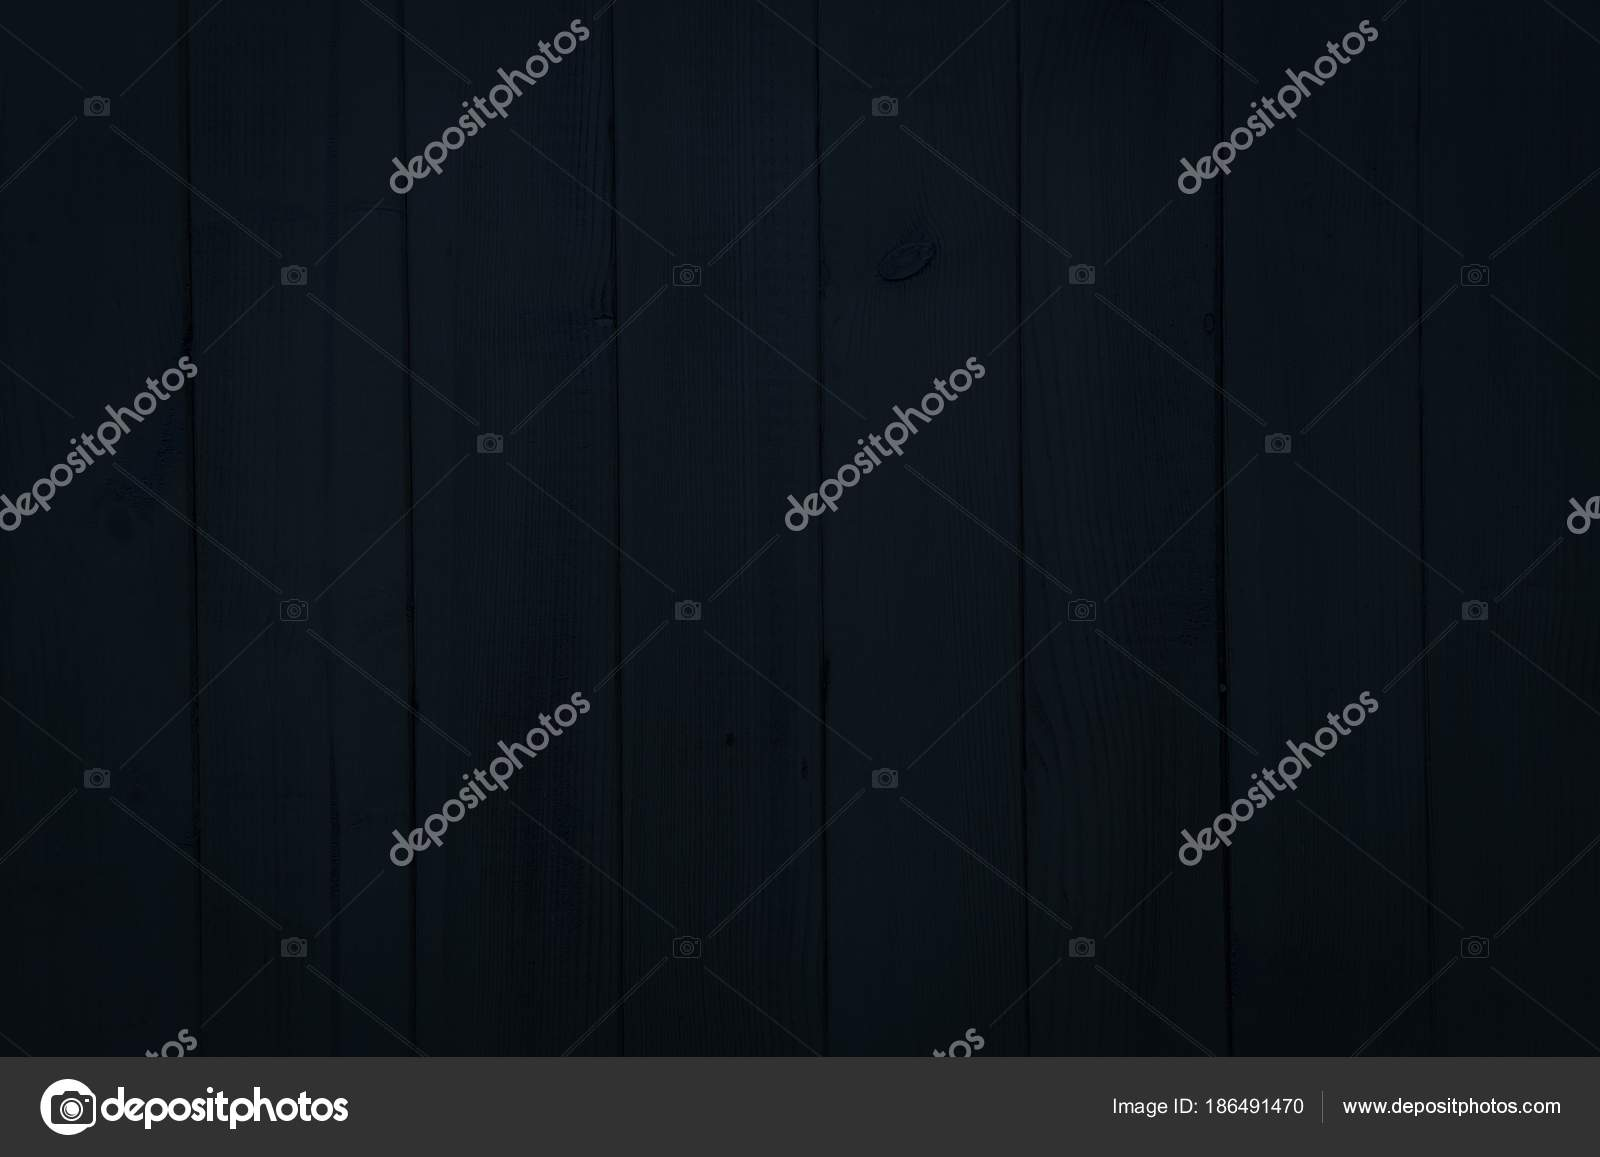 Dark Wood Texture Background Black Planks Old Grunge Washed Painted Wooden Table Pattern Top View Photo By T Trifonoff